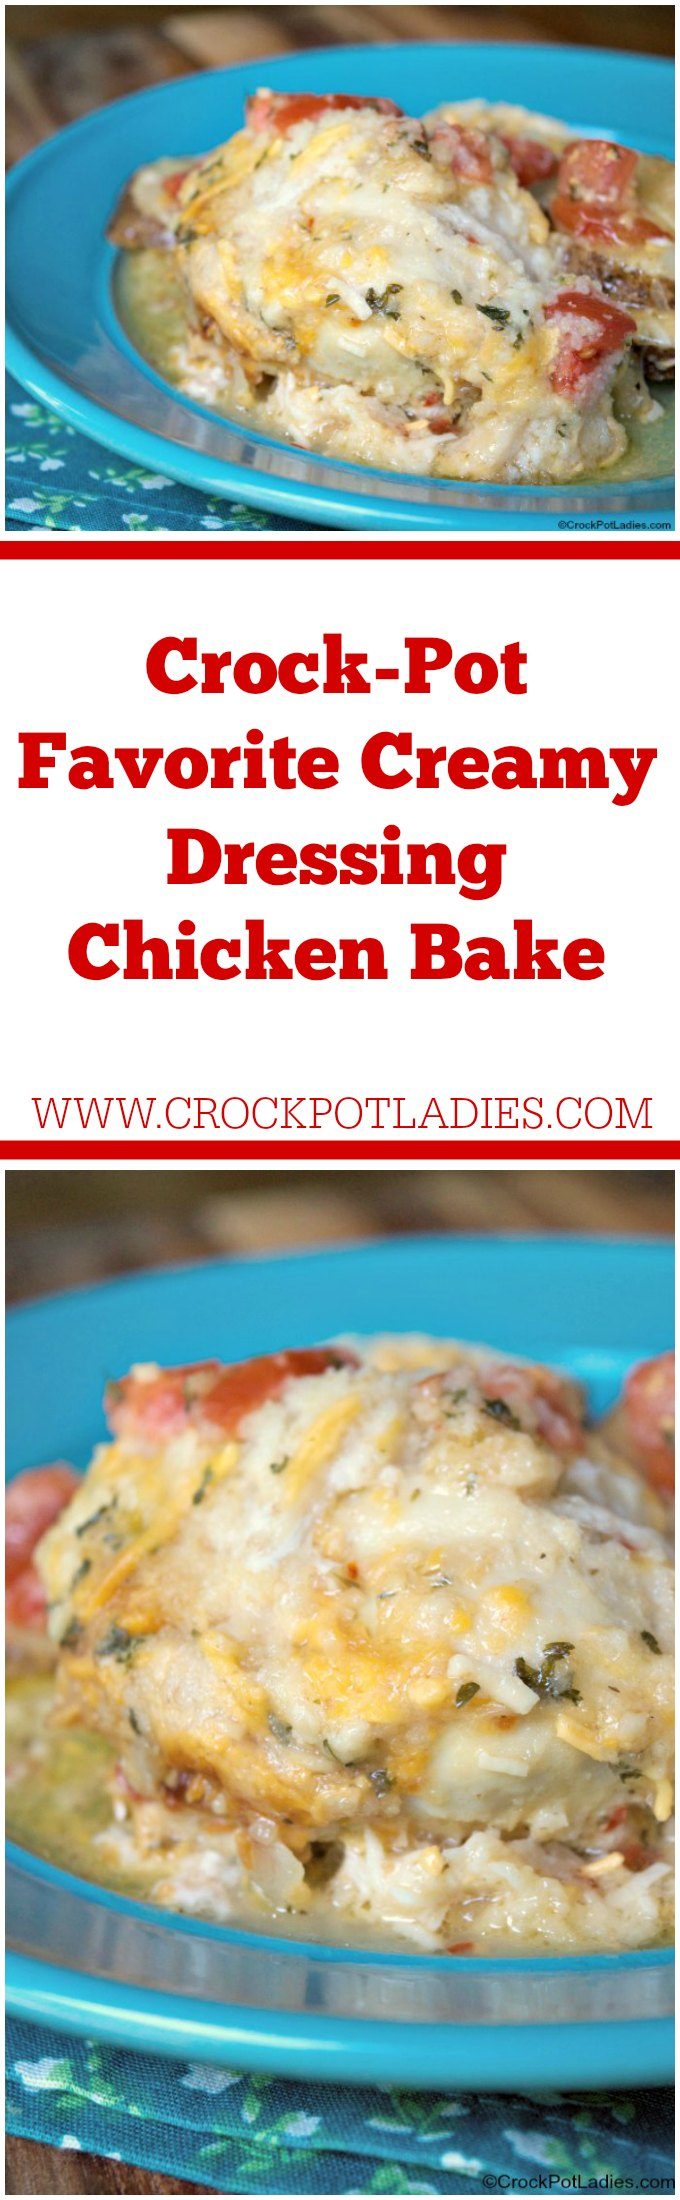 Crock-Pot Favorite Creamy Dressing Chicken Bake